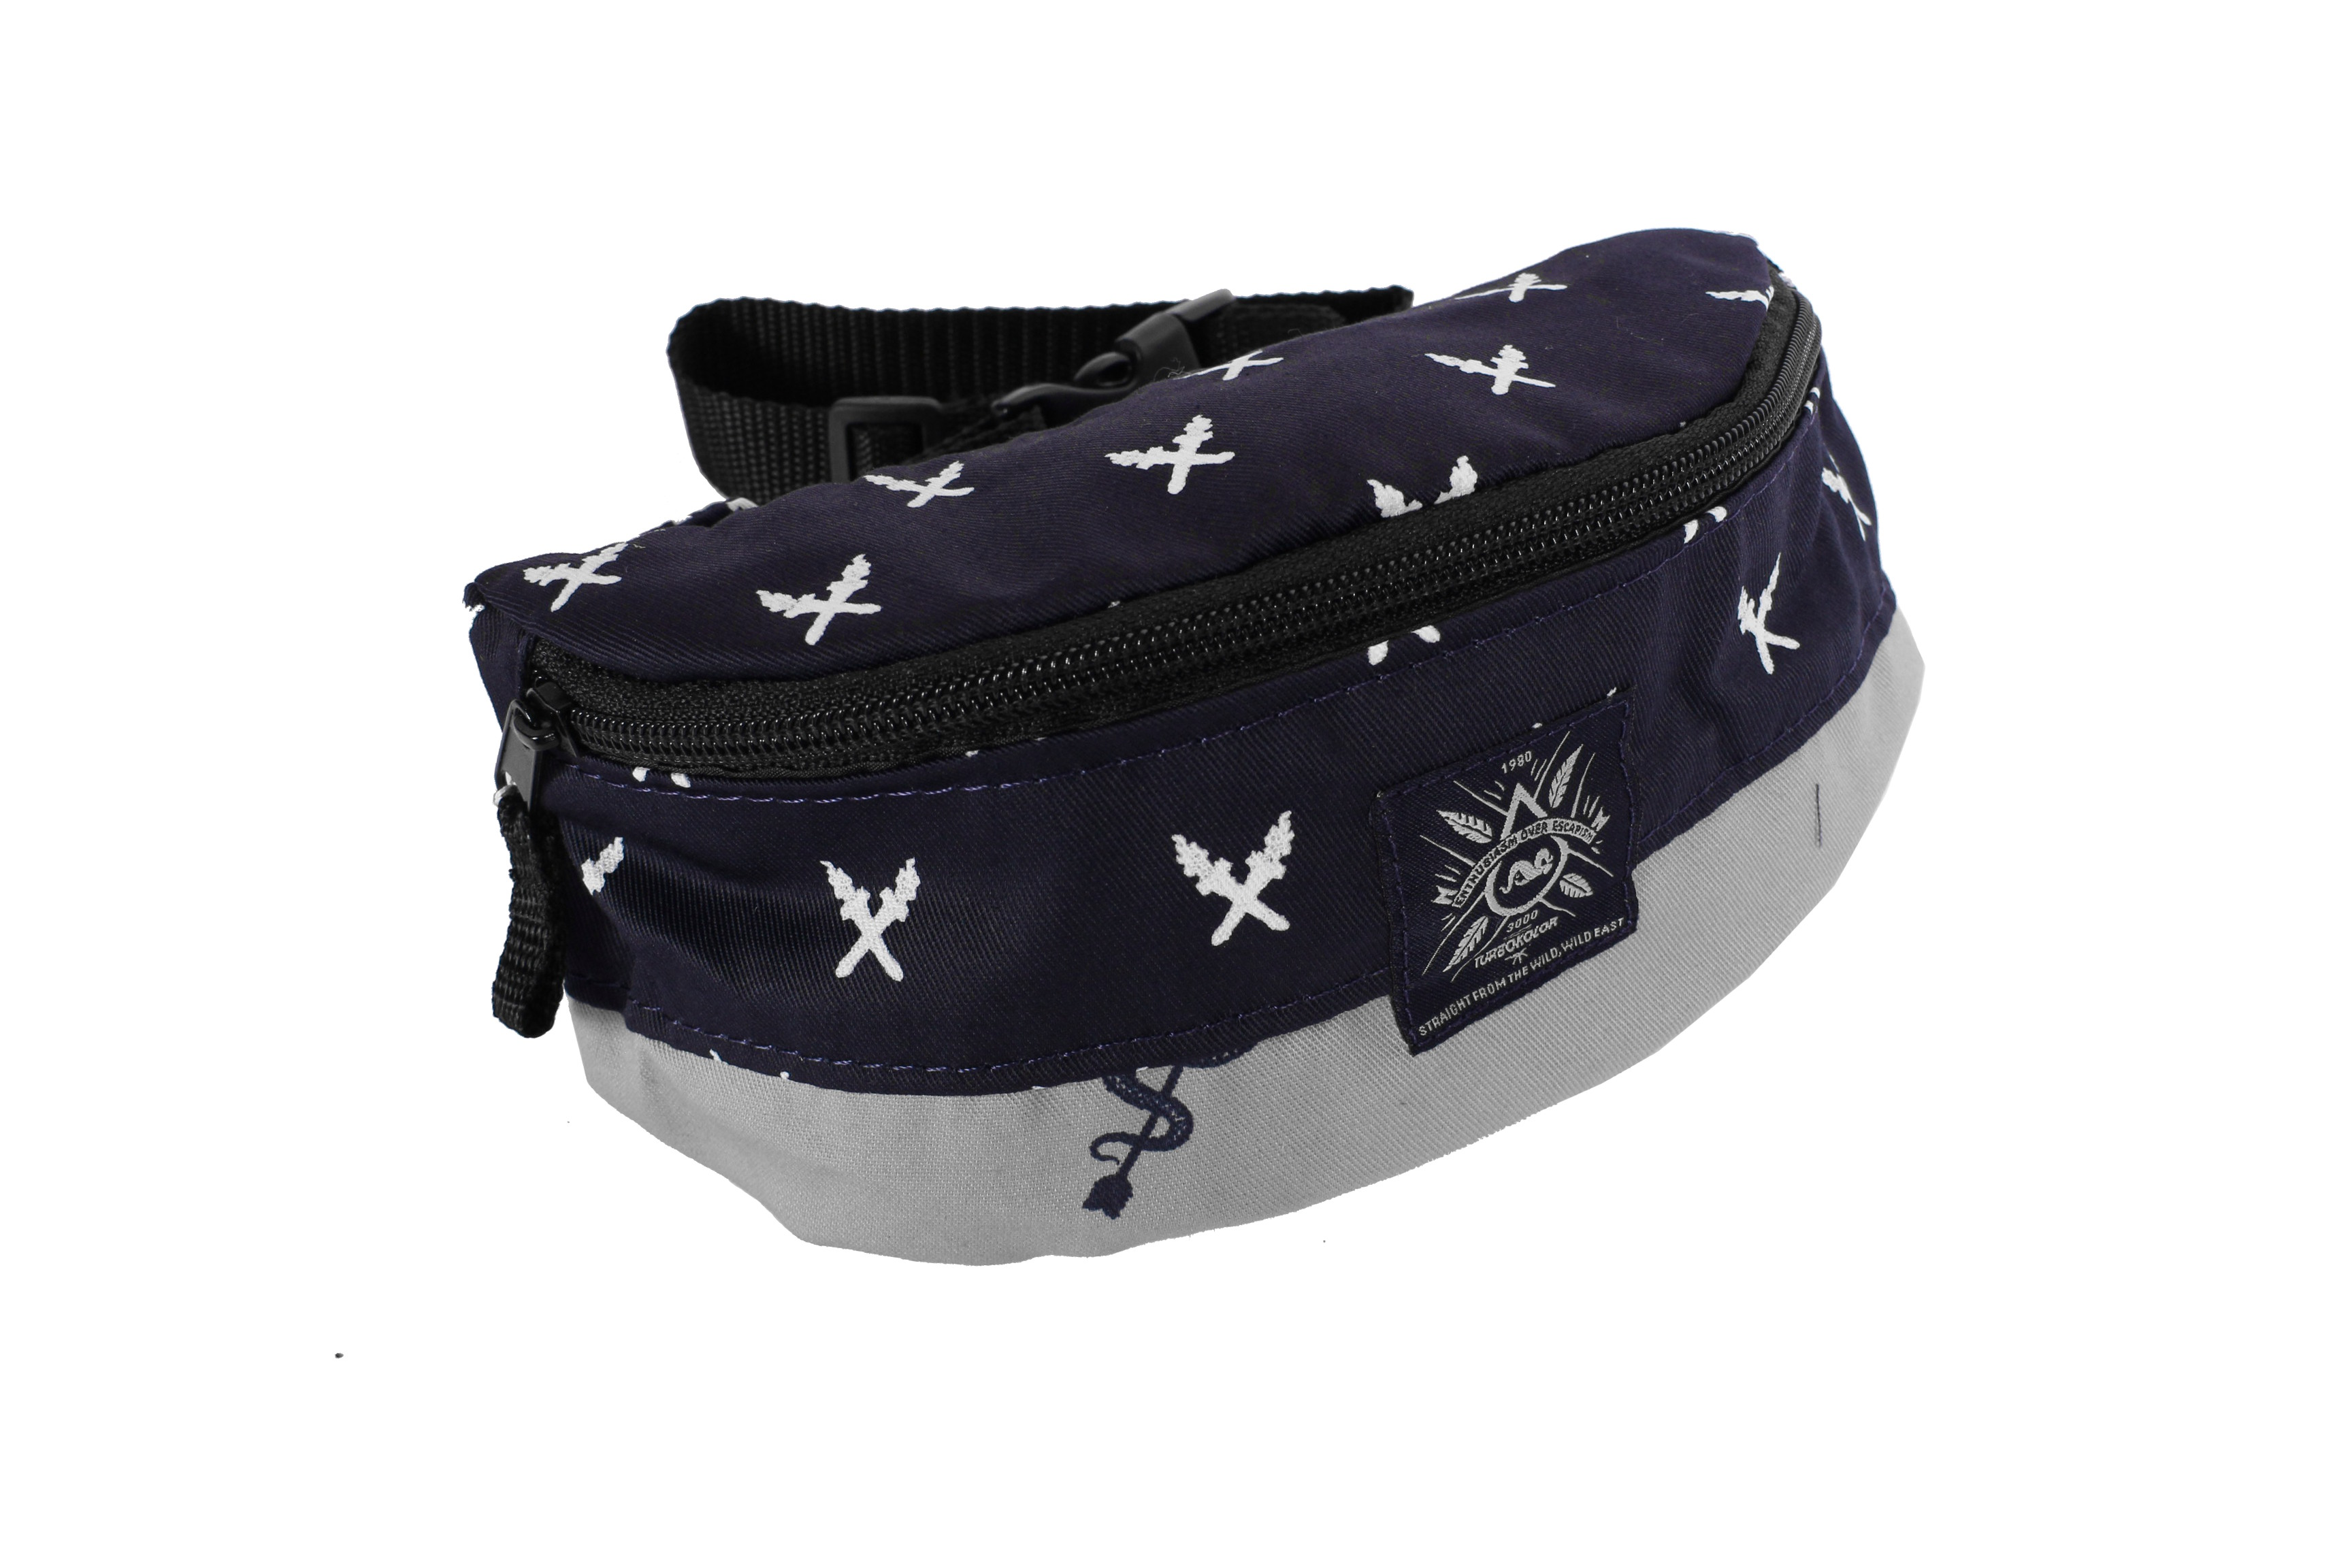 Nerka Turbokolor Hip-bag (Navy/Torch Print)